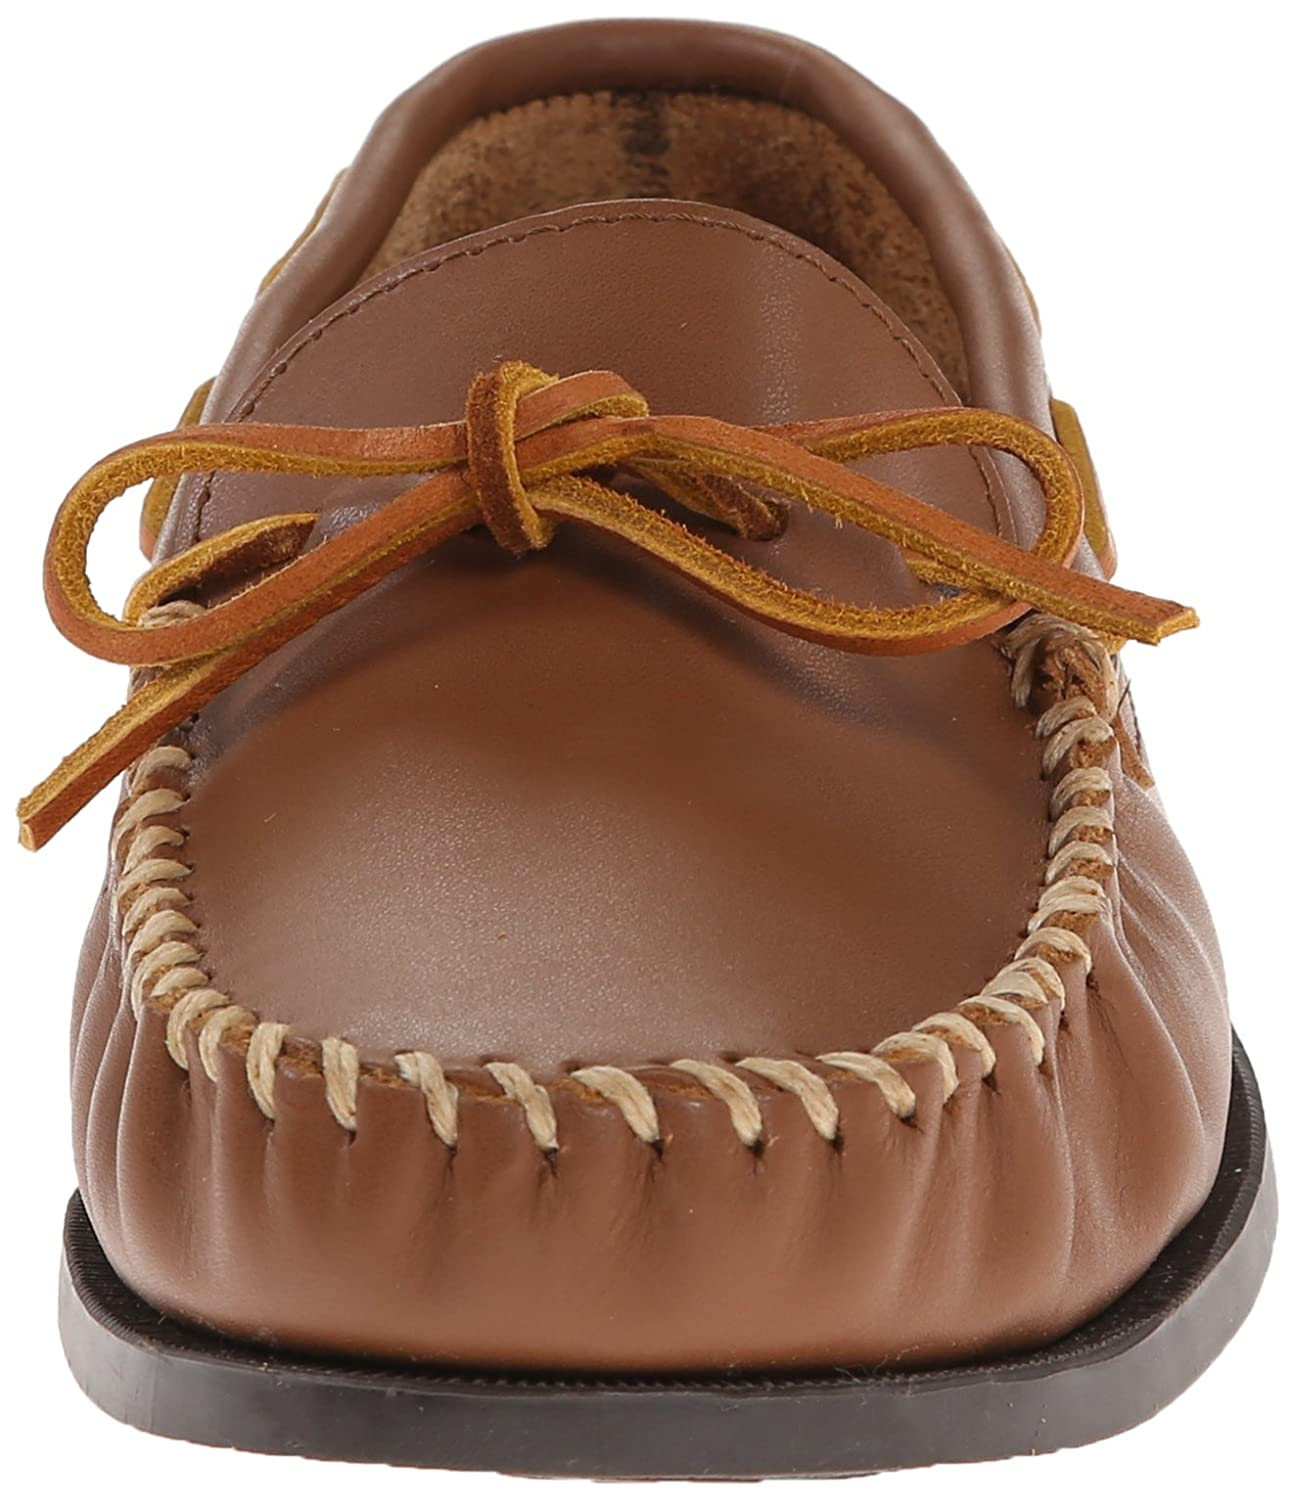 Minnetonka 742X Camp Moc, Mocasines para Hombre, Marrón (Maple), 47 EU: Amazon.es: Zapatos y complementos